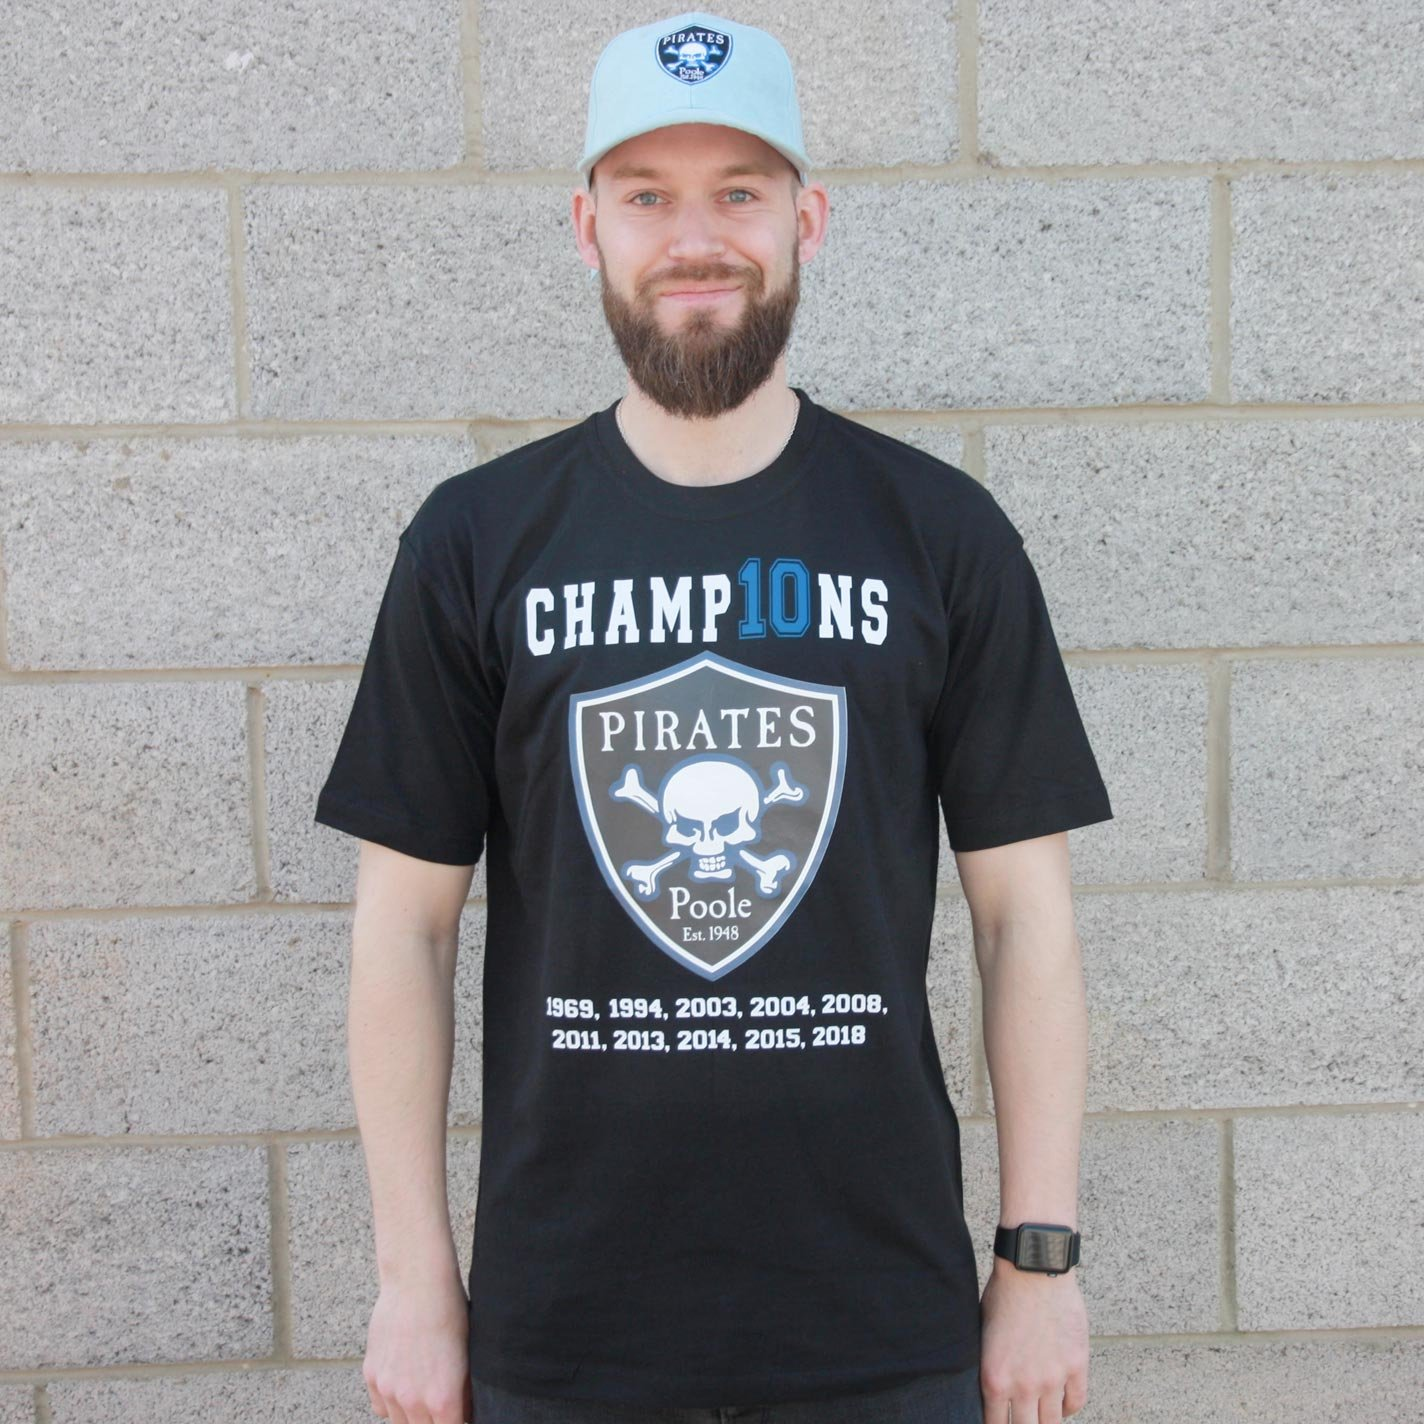 Poole Pirates Champ10ns T-shirt